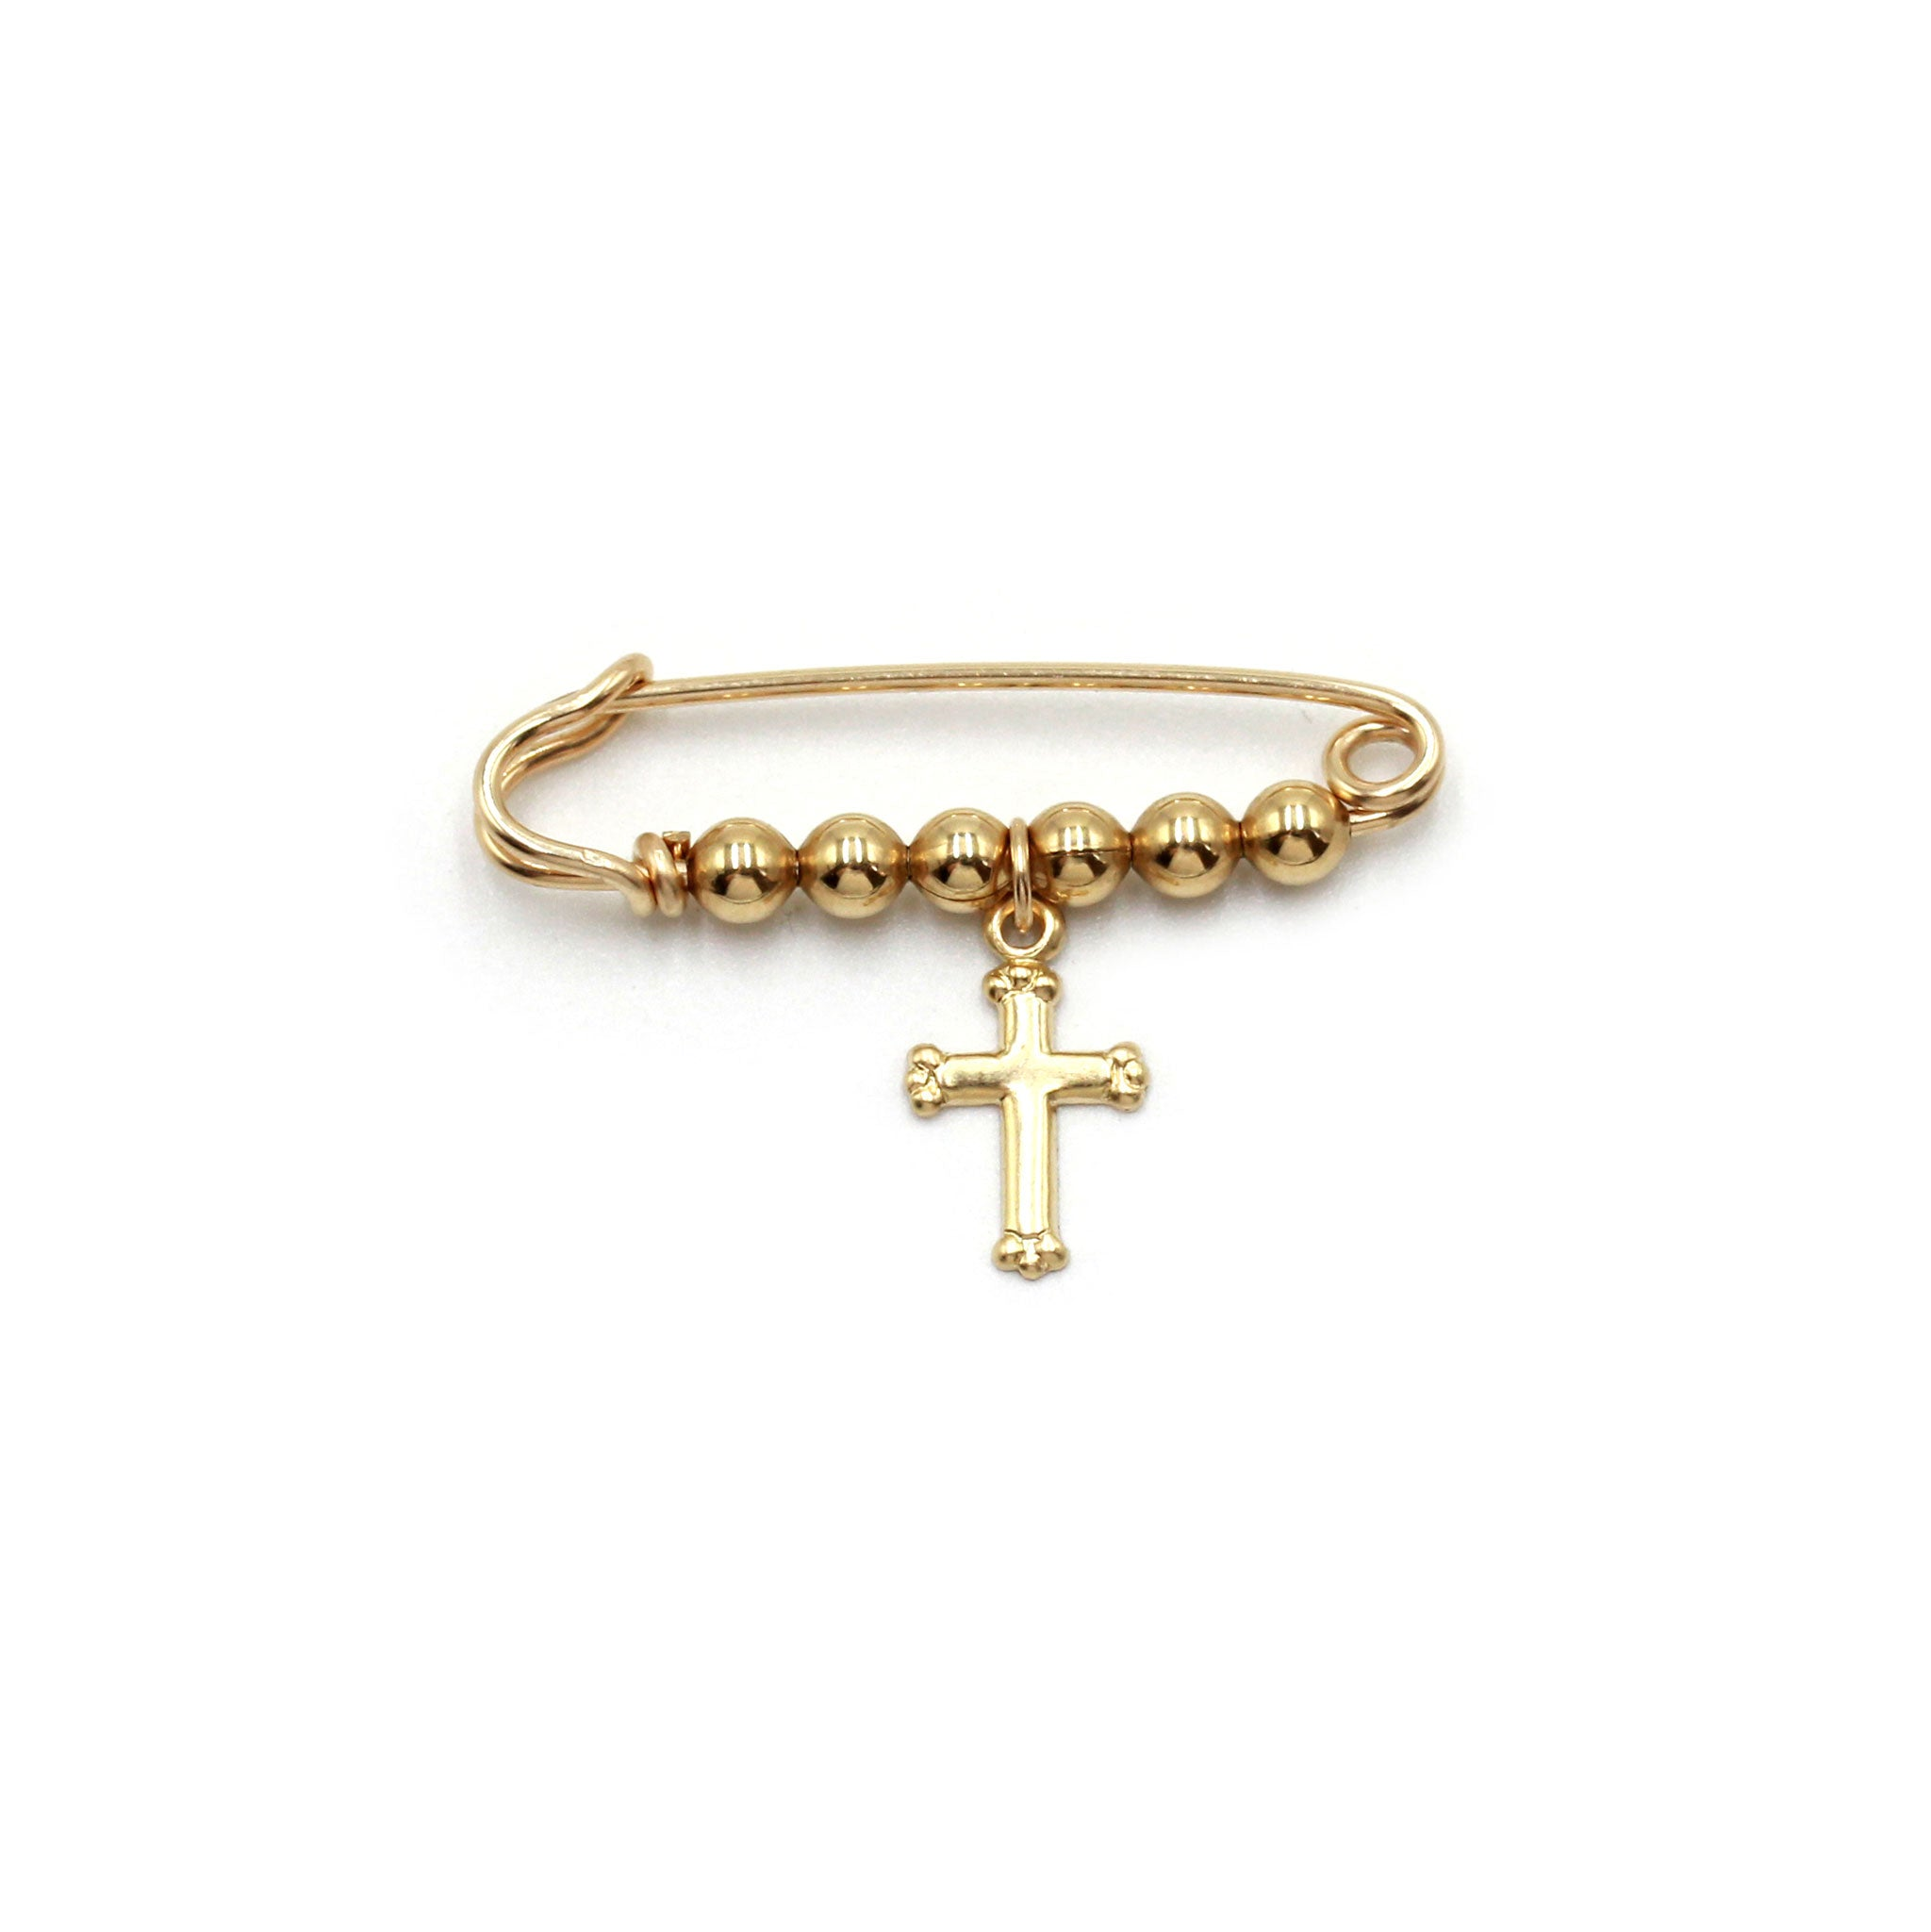 Goldfilled pin with crucifix